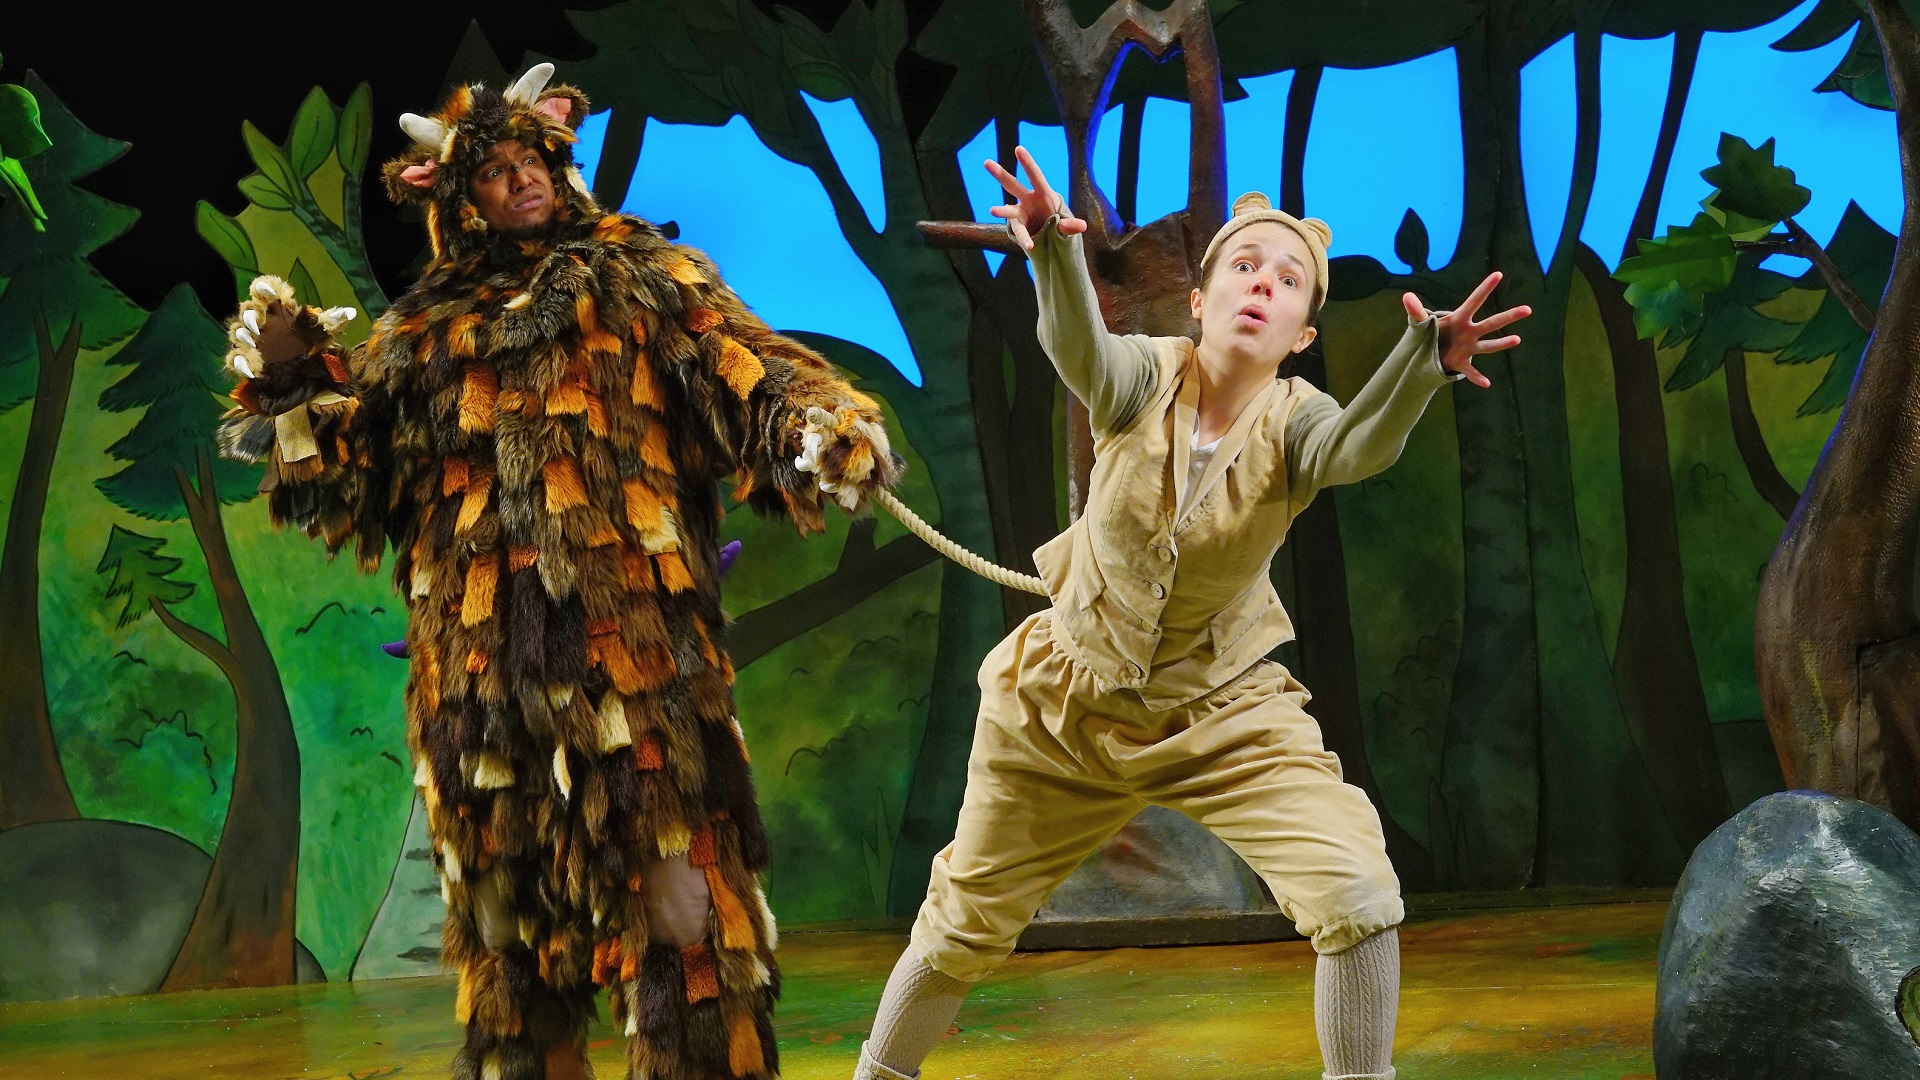 The Gruffalo grabs Mouse's tail on stage.